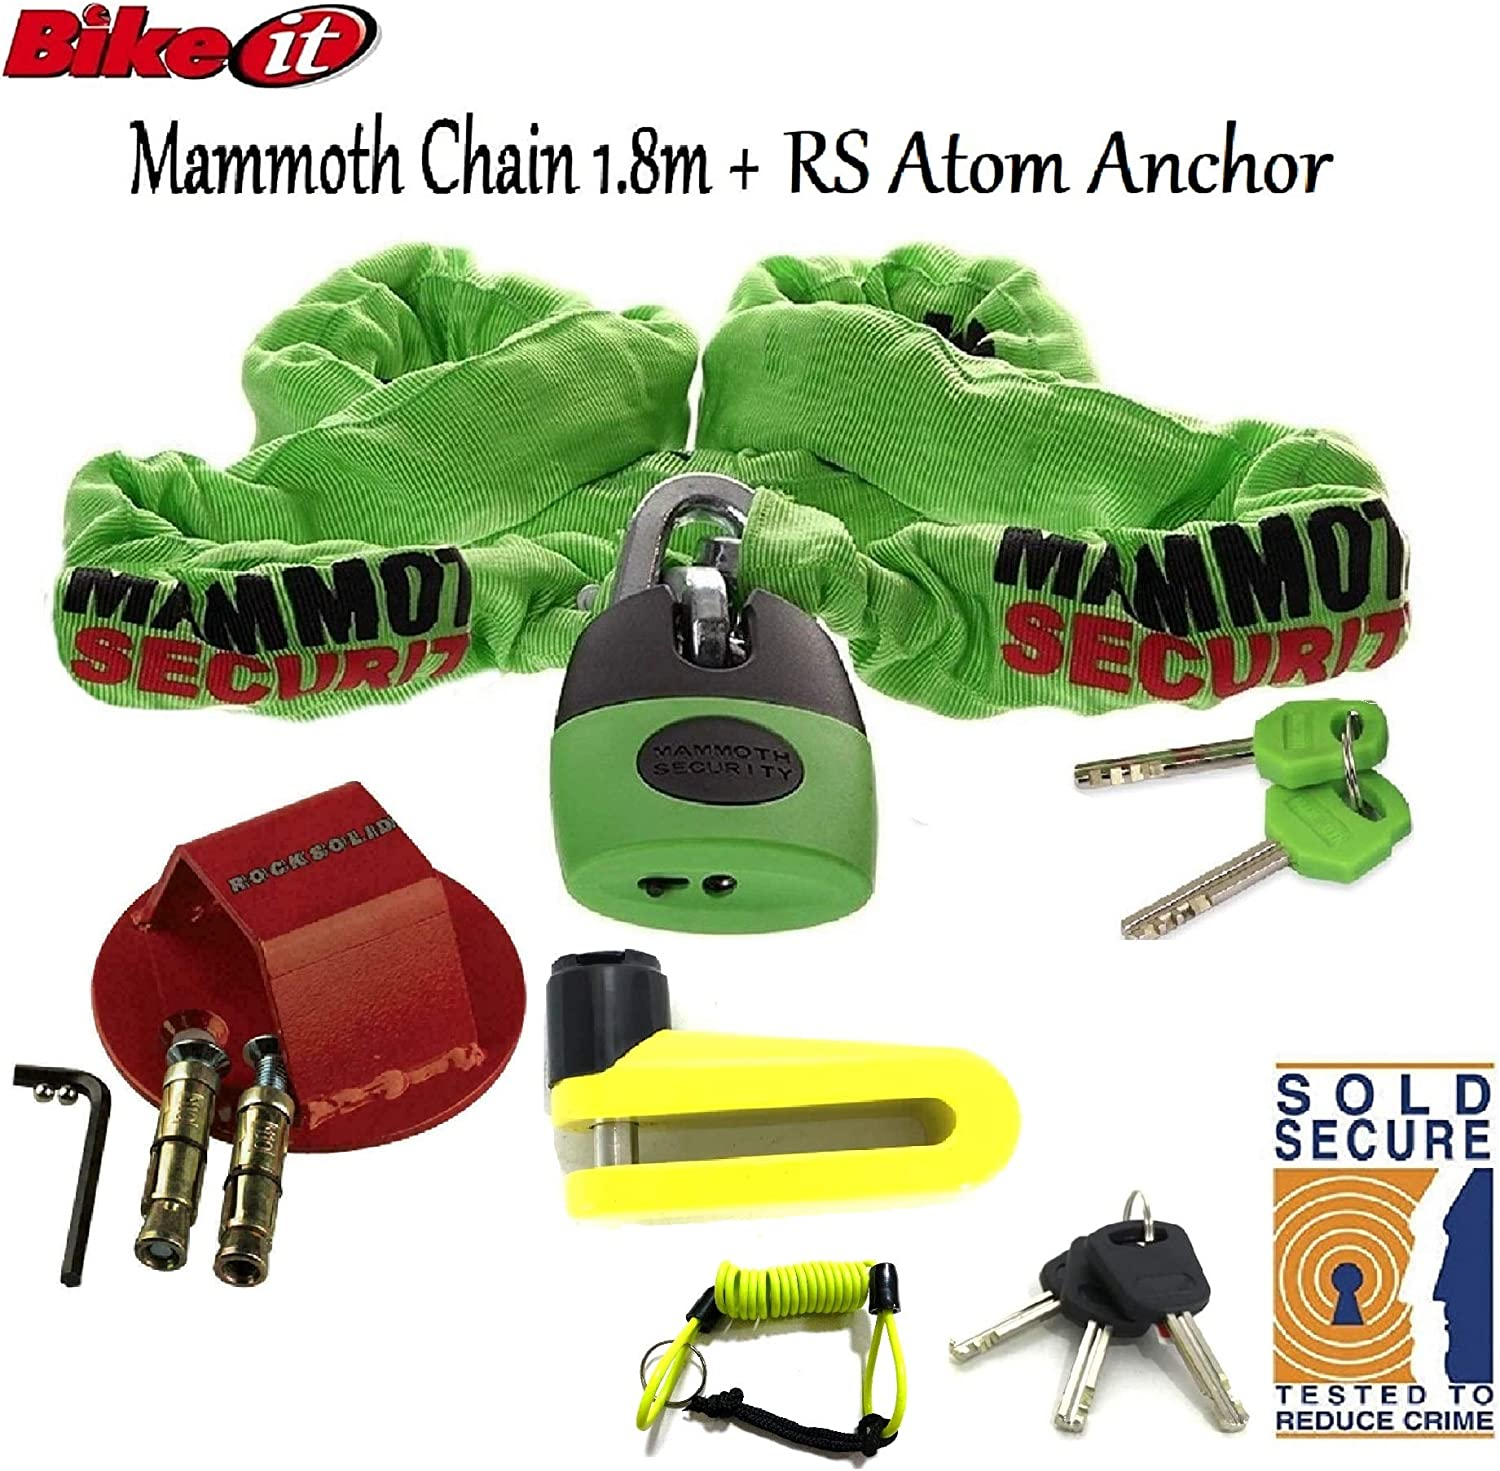 DLR Bikeit MAMMOTH SOLD SECURE GOLD APPROVED LOCM003 1.8M CHAIN LOCK Motorbike Motorcycle Theft Protection Safety RS Atom Ground Anchor /& Trigger 10mm Disc Lock